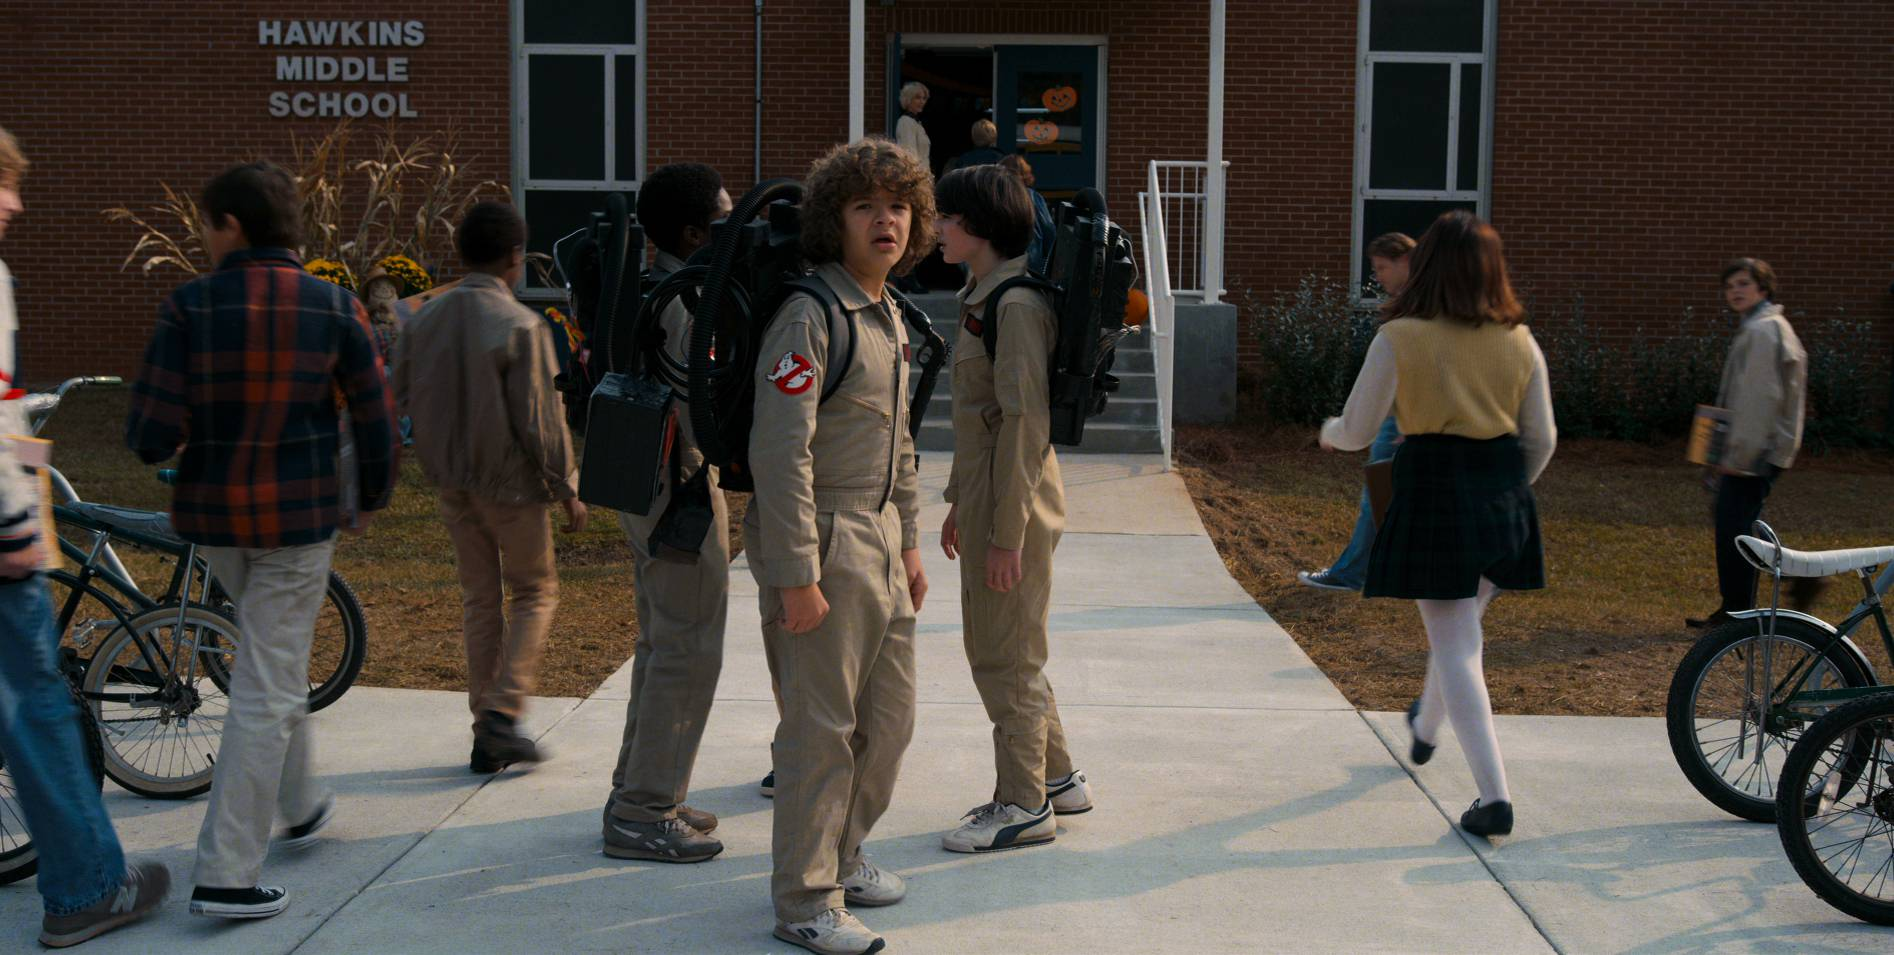 stranger-things-season-2-official-stills-006.jpg